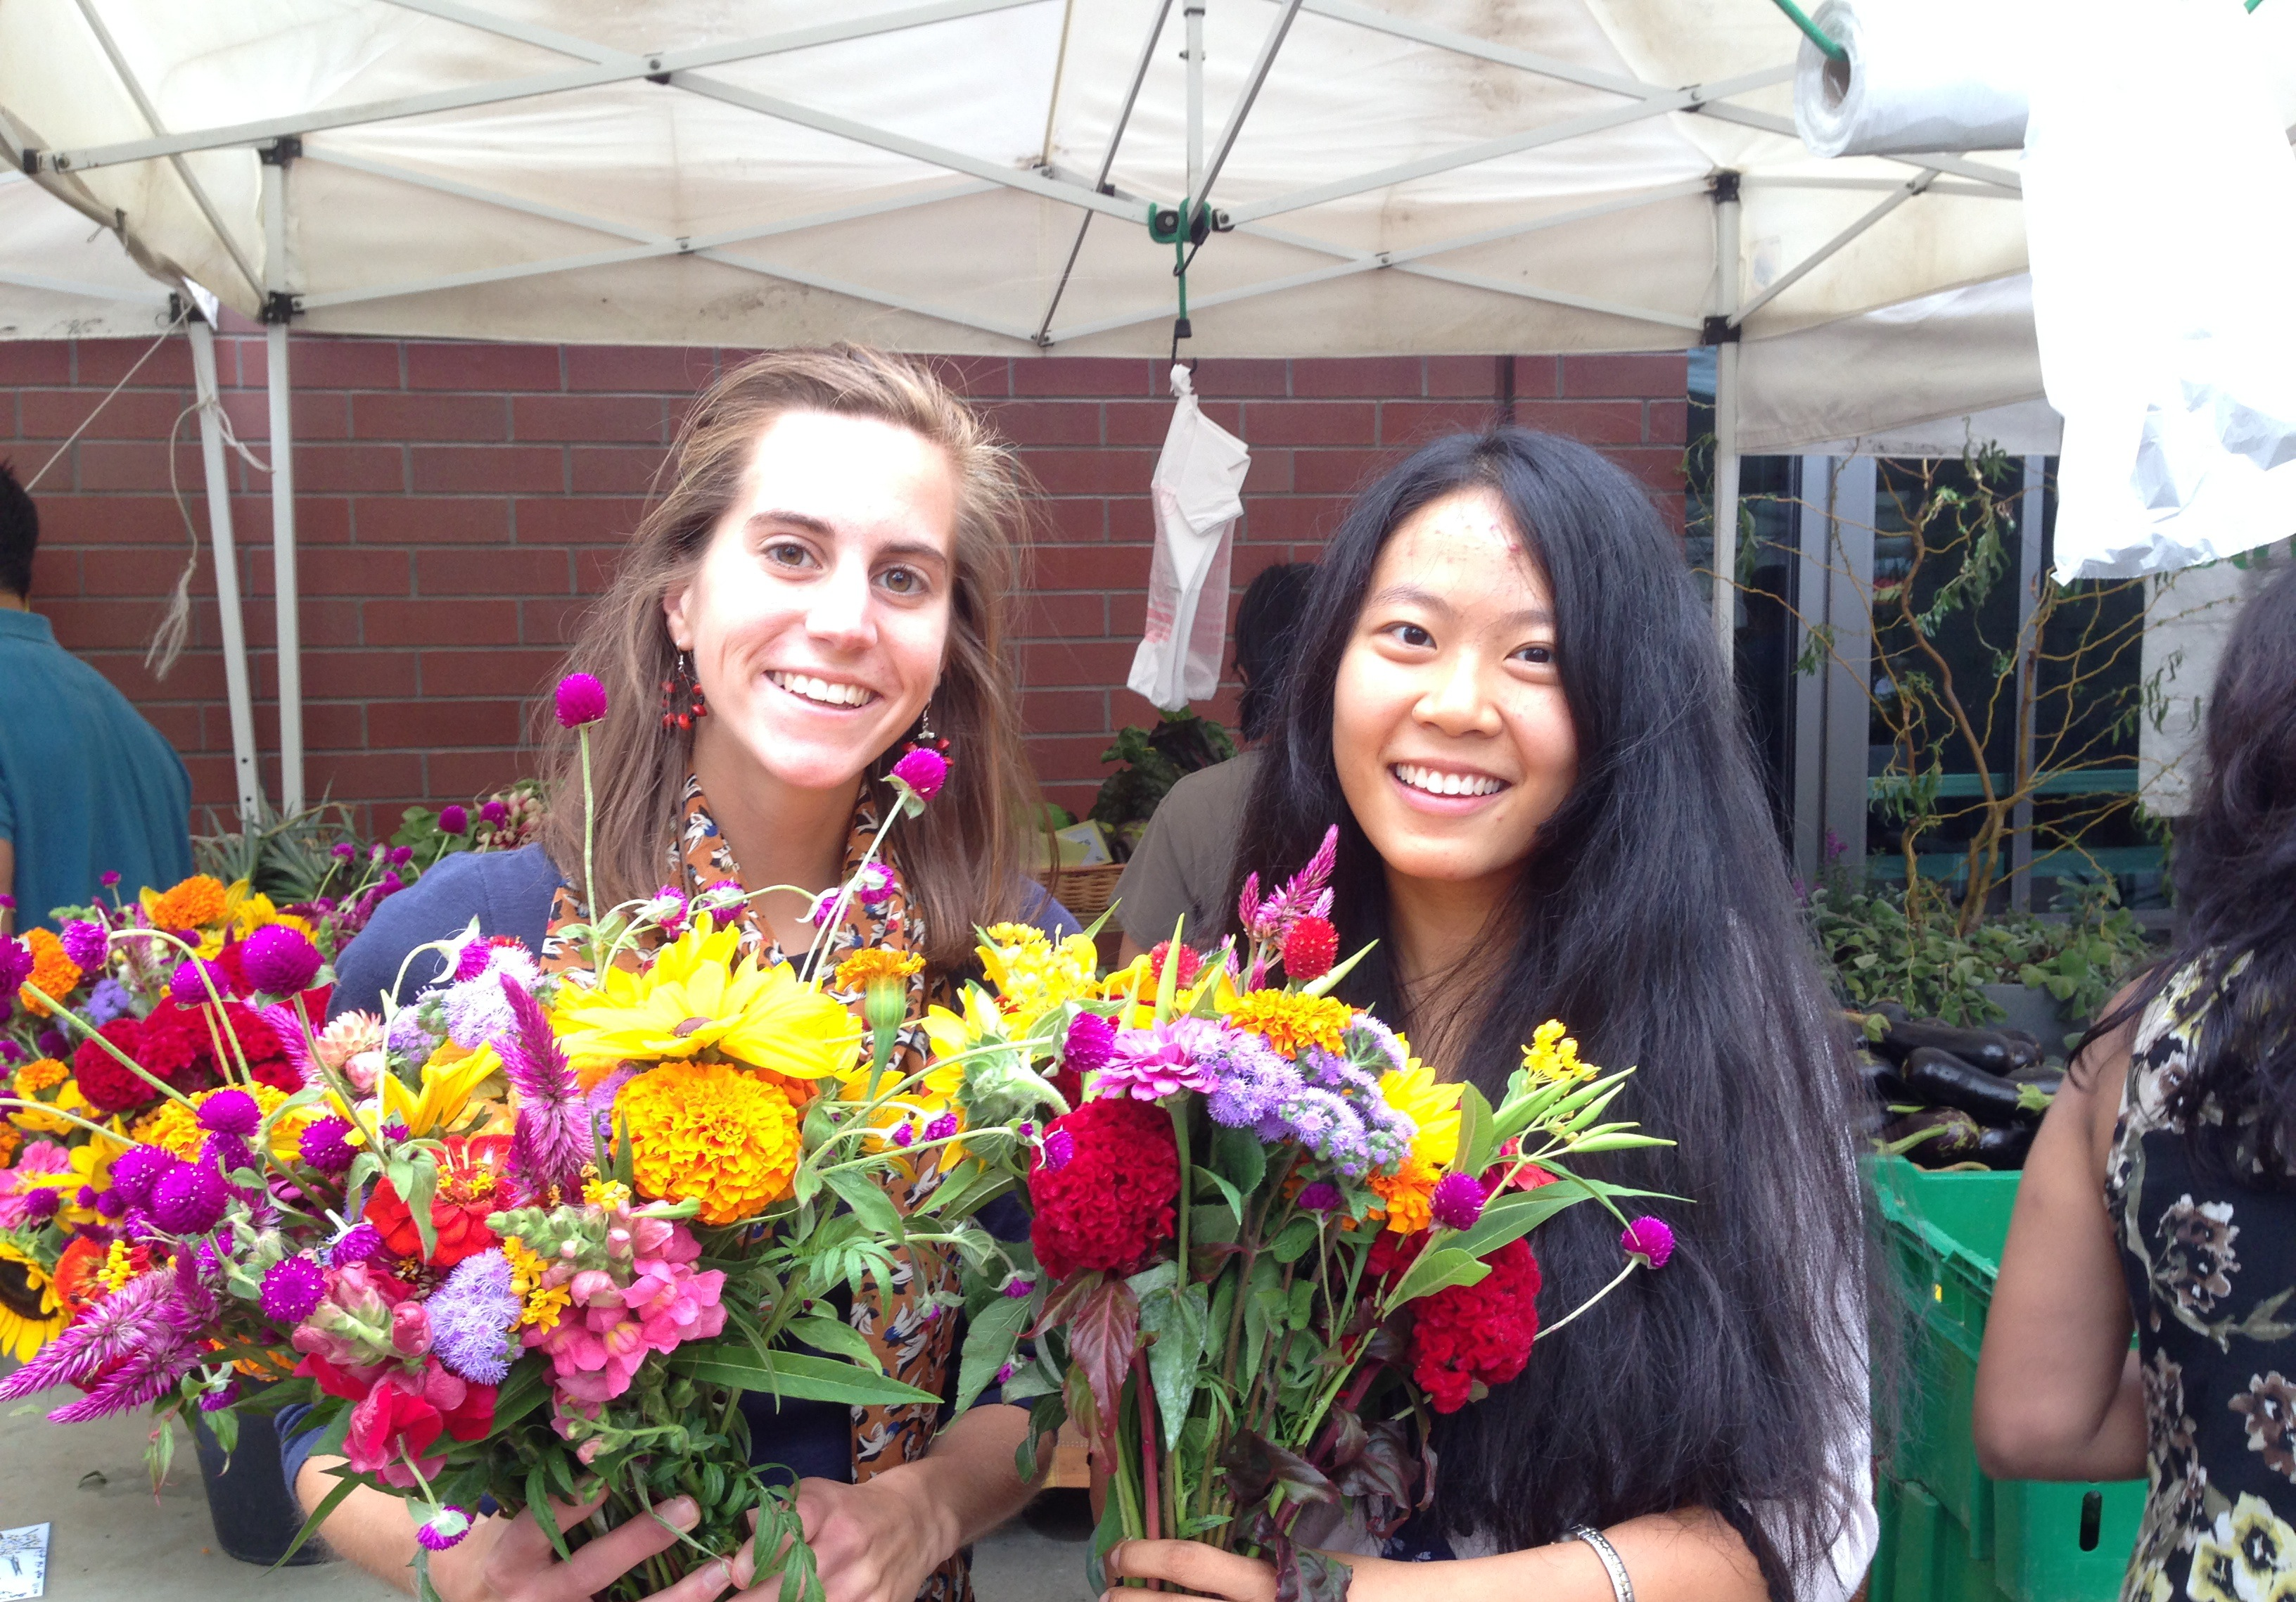 This is a photo of my friend and me with flowers from the farmer's market.